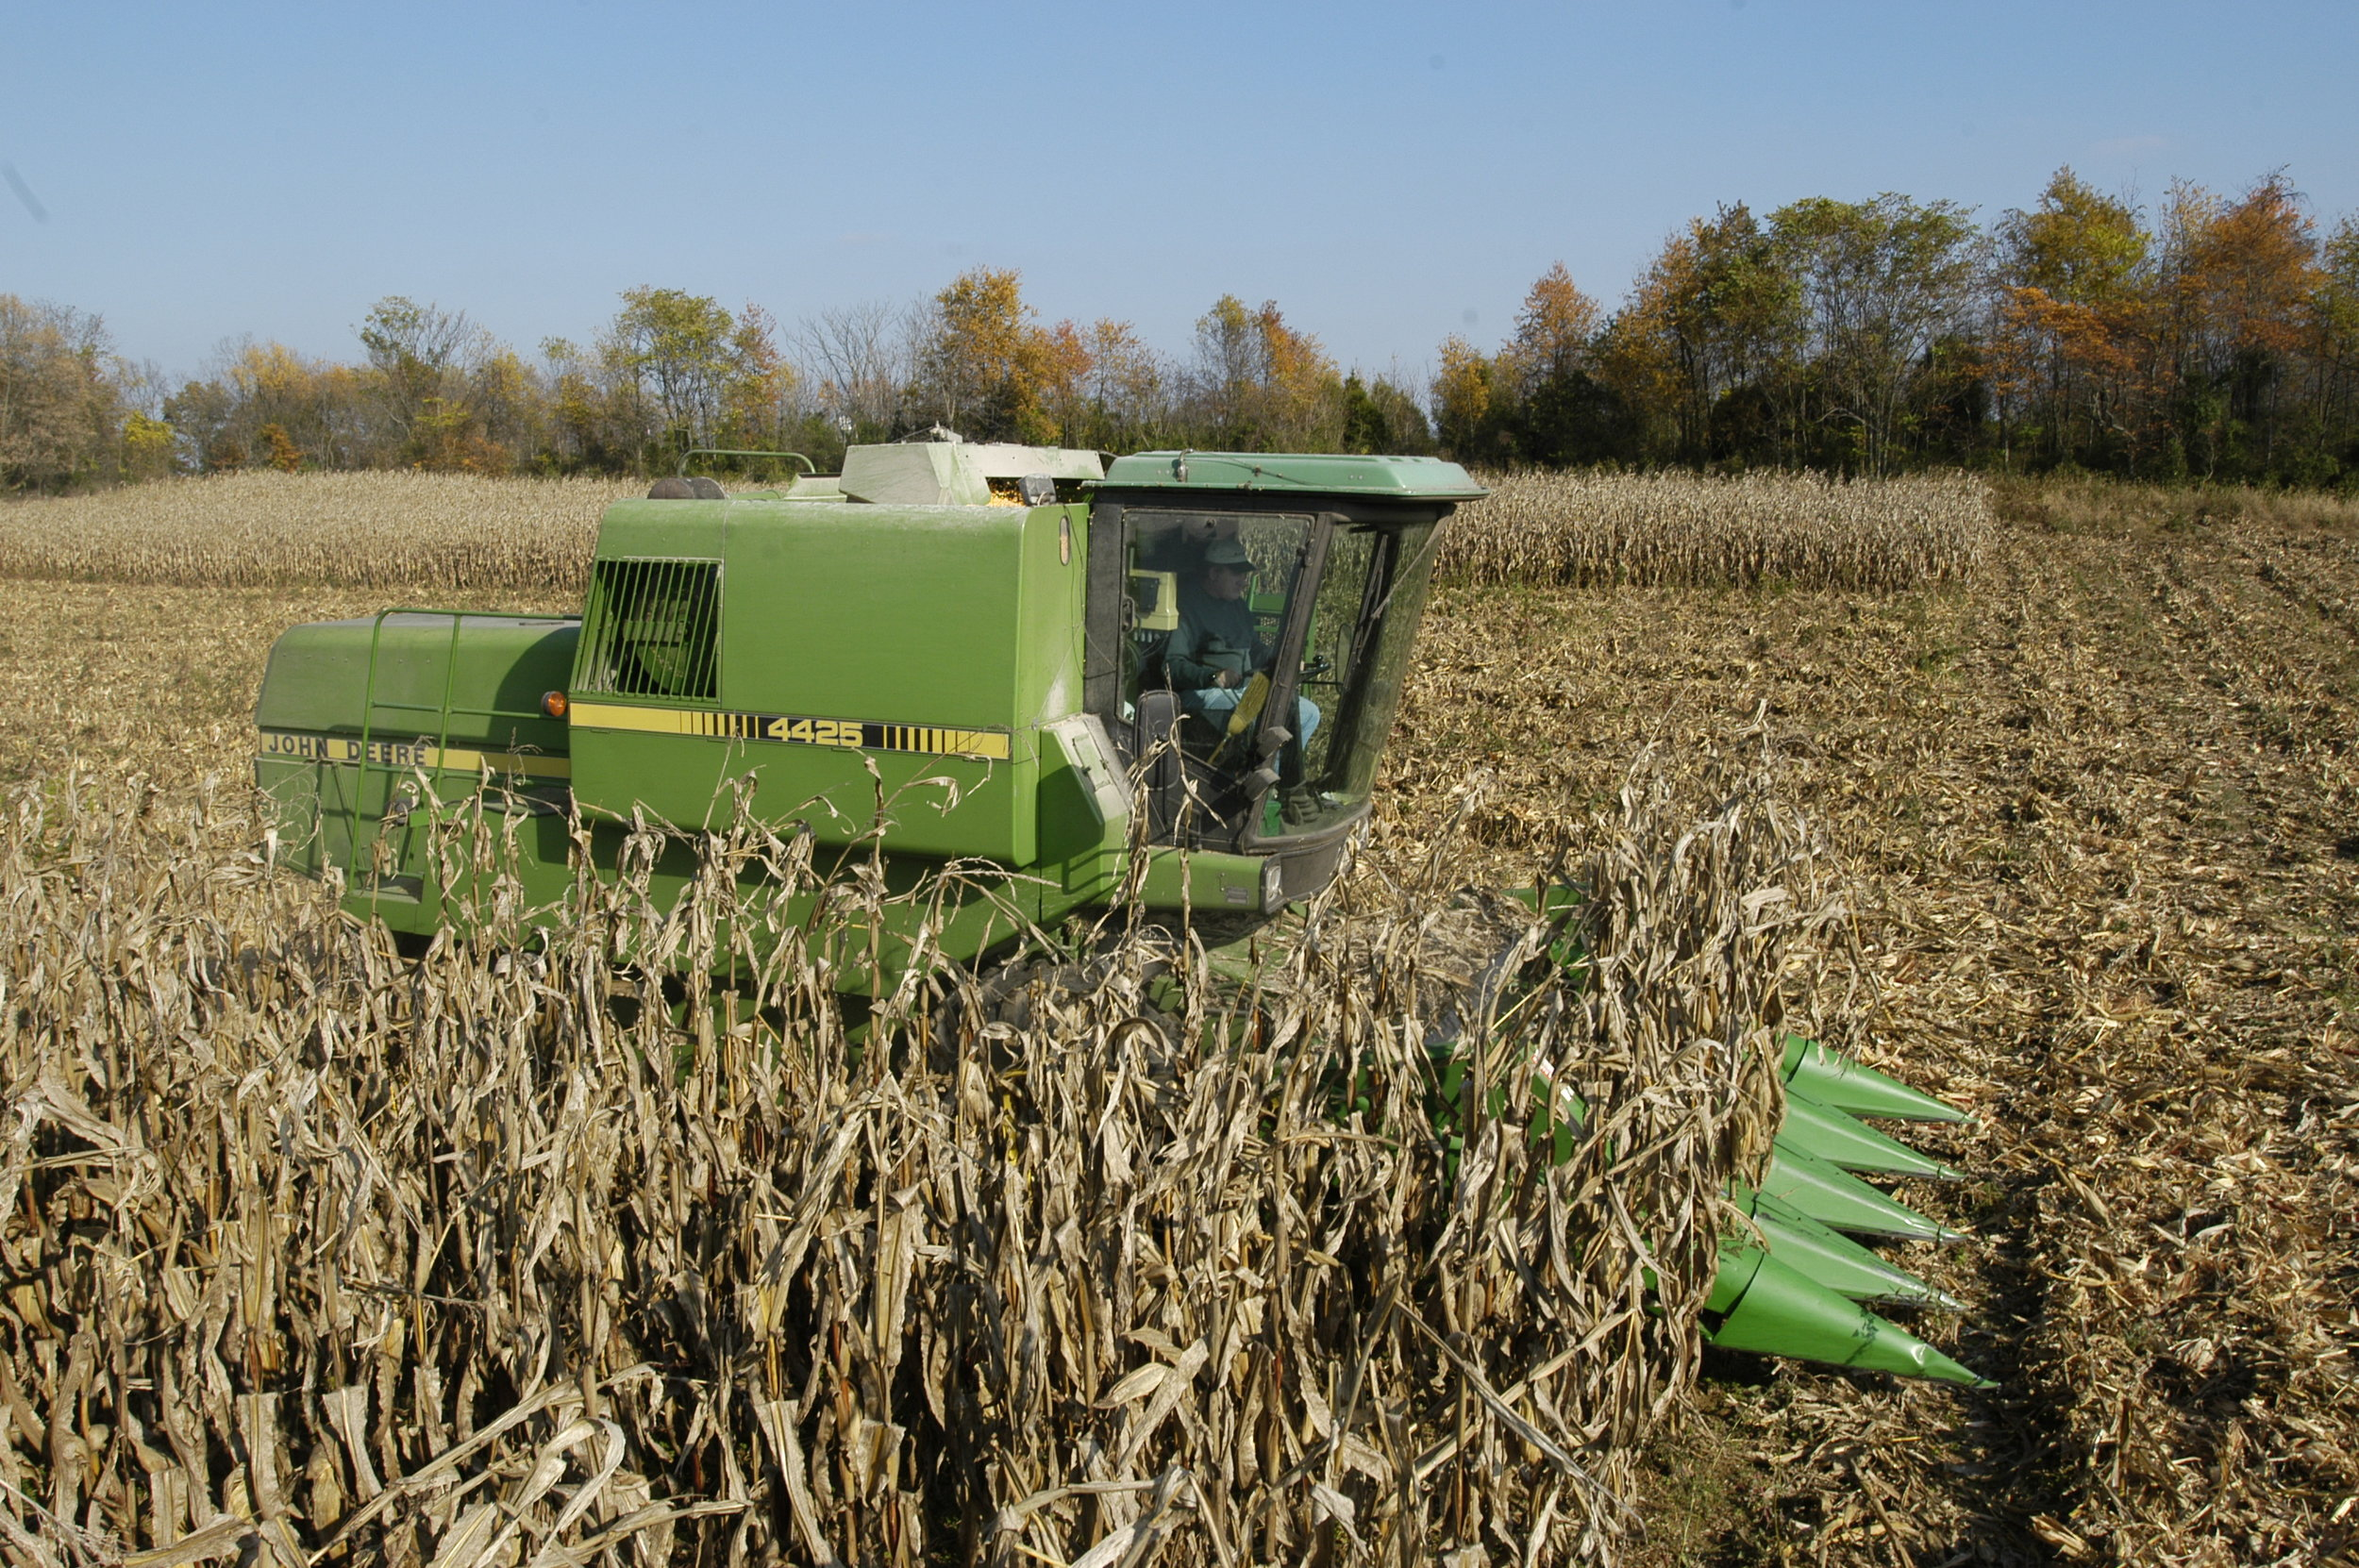 Maryland corn harvest with combine with corn header. Image by Edwin Remsberg